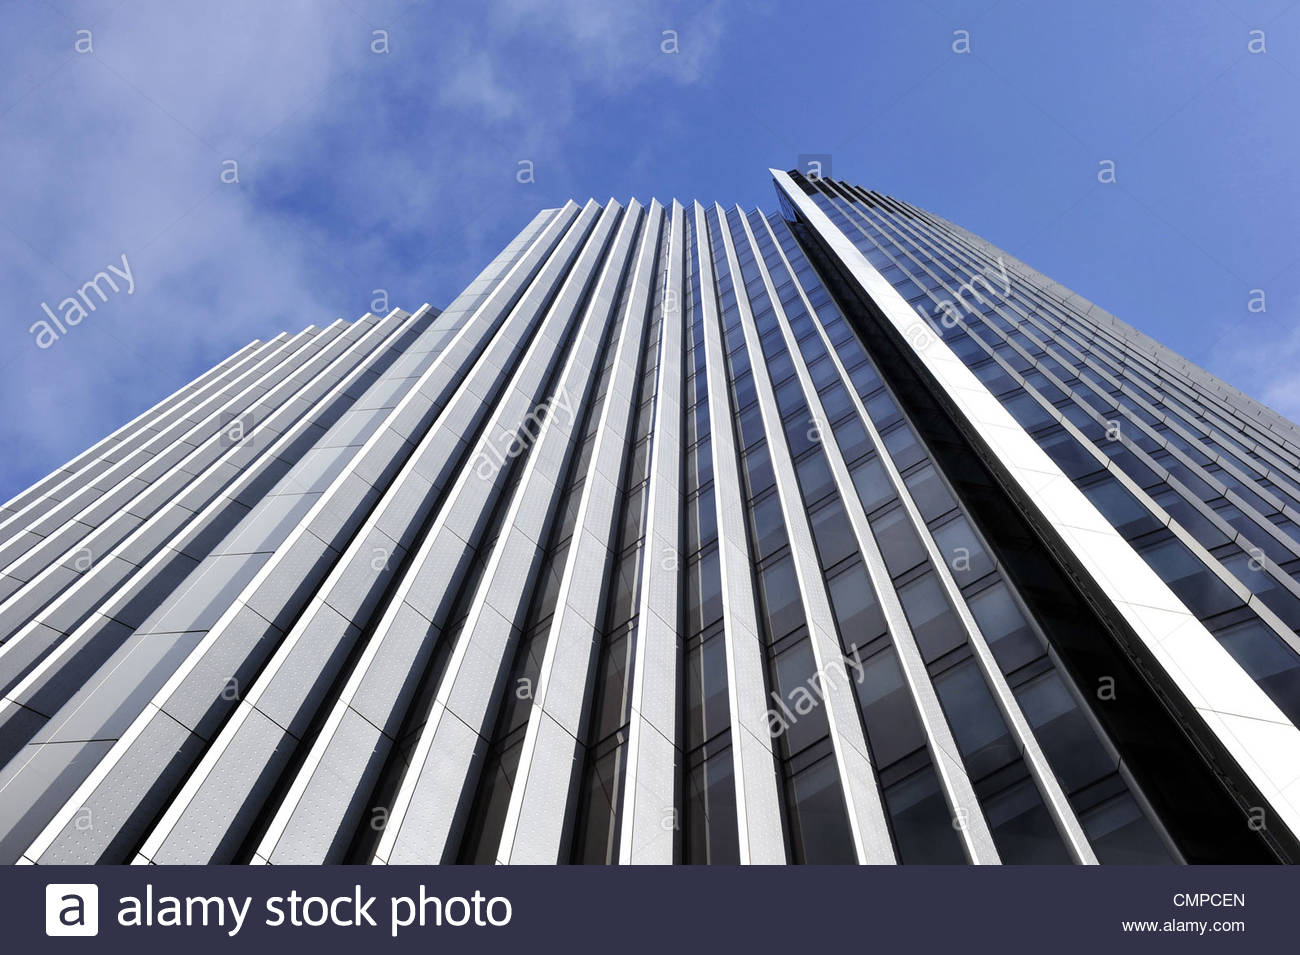 Willis Building - modern office architecture detail, City of London UK - Stock Image